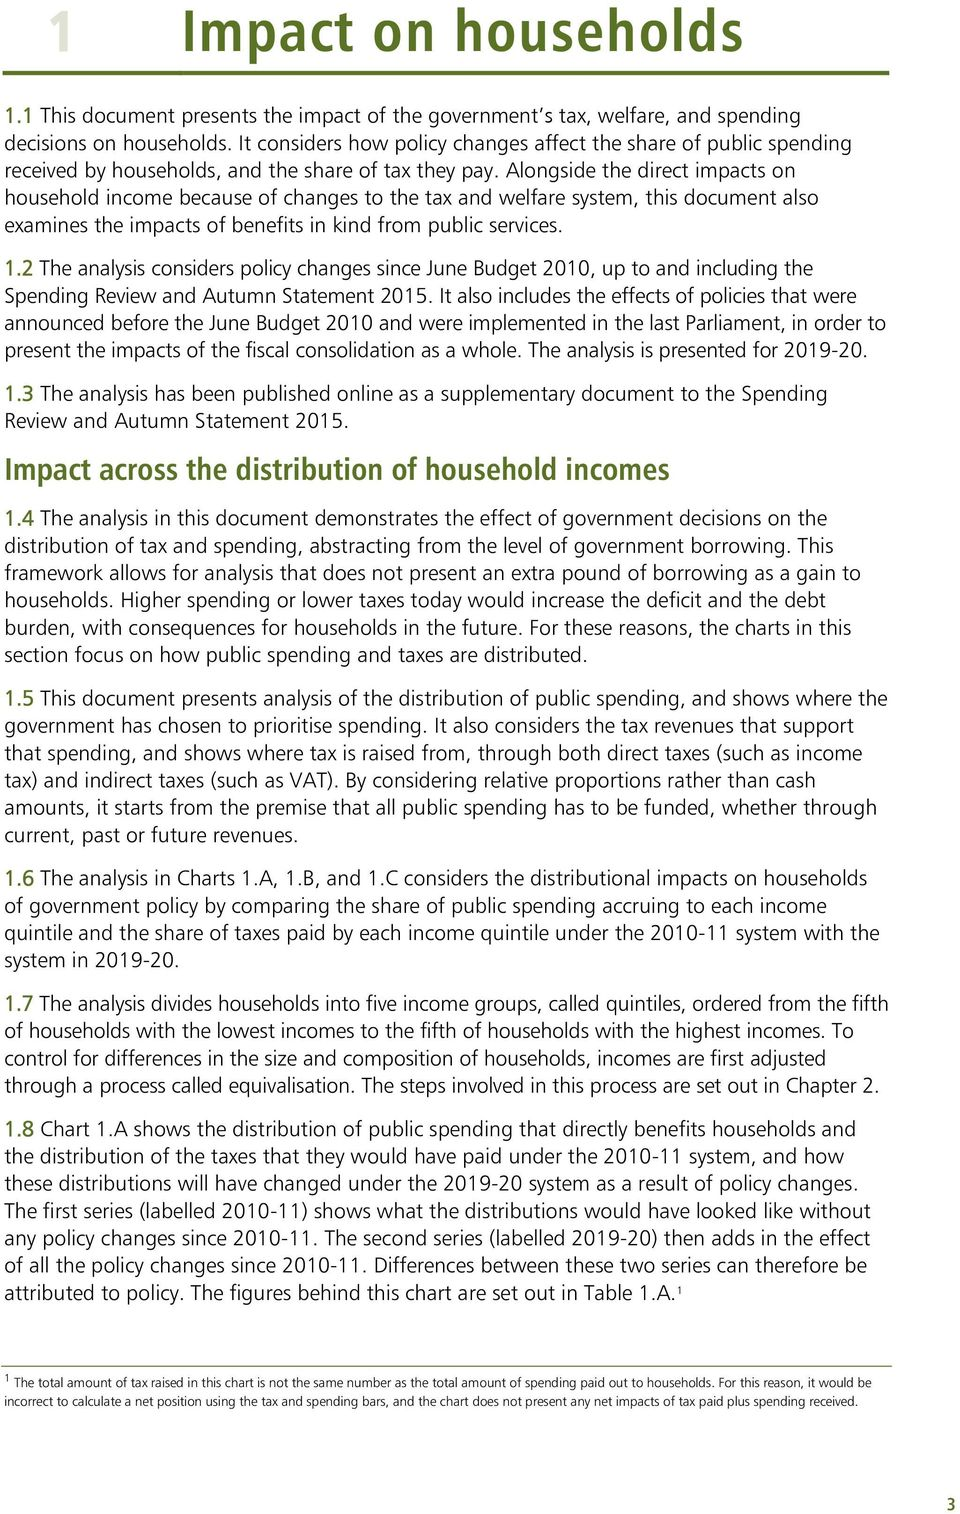 Alongside the direct impacts on household income because of changes to the tax and welfare system, this document also examines the impacts of benefits in kind from public services. 1.